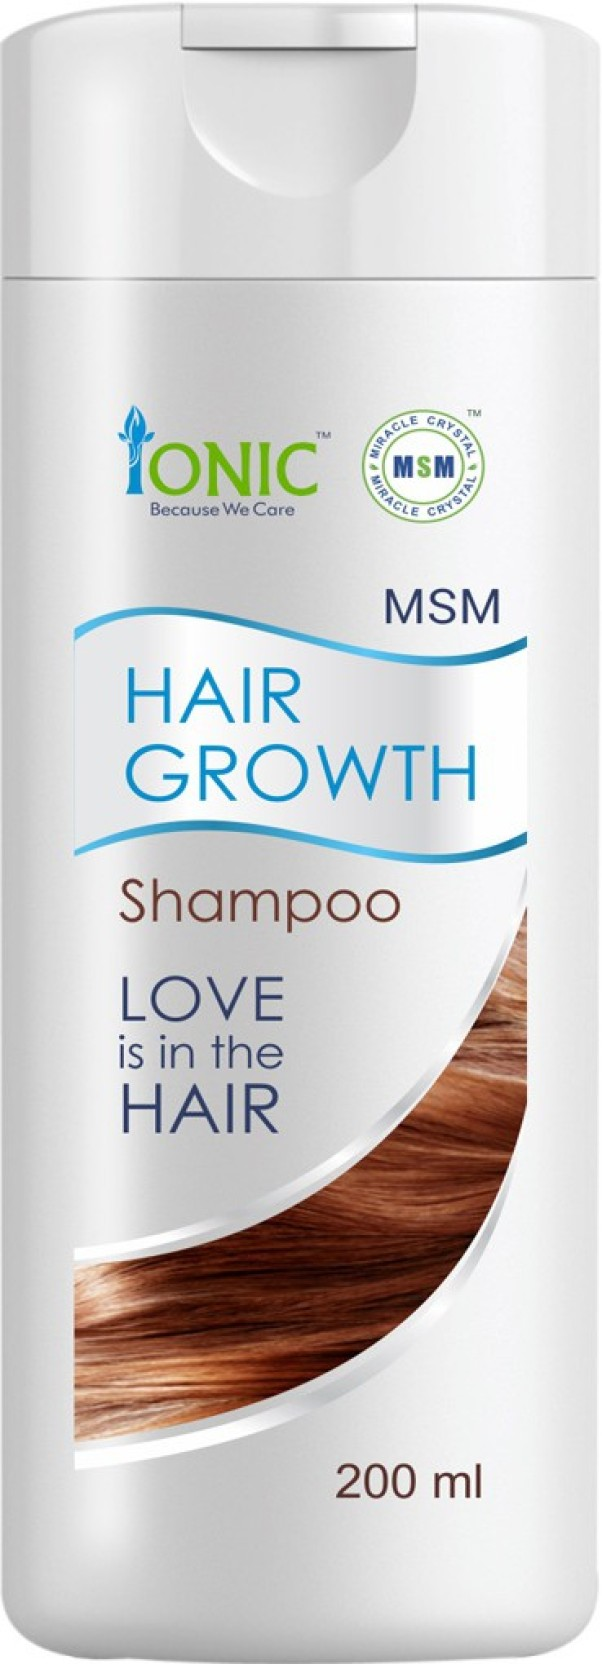 Ionic MSM Hair Growth Shampoo - Price in India, Buy Ionic MSM Hair